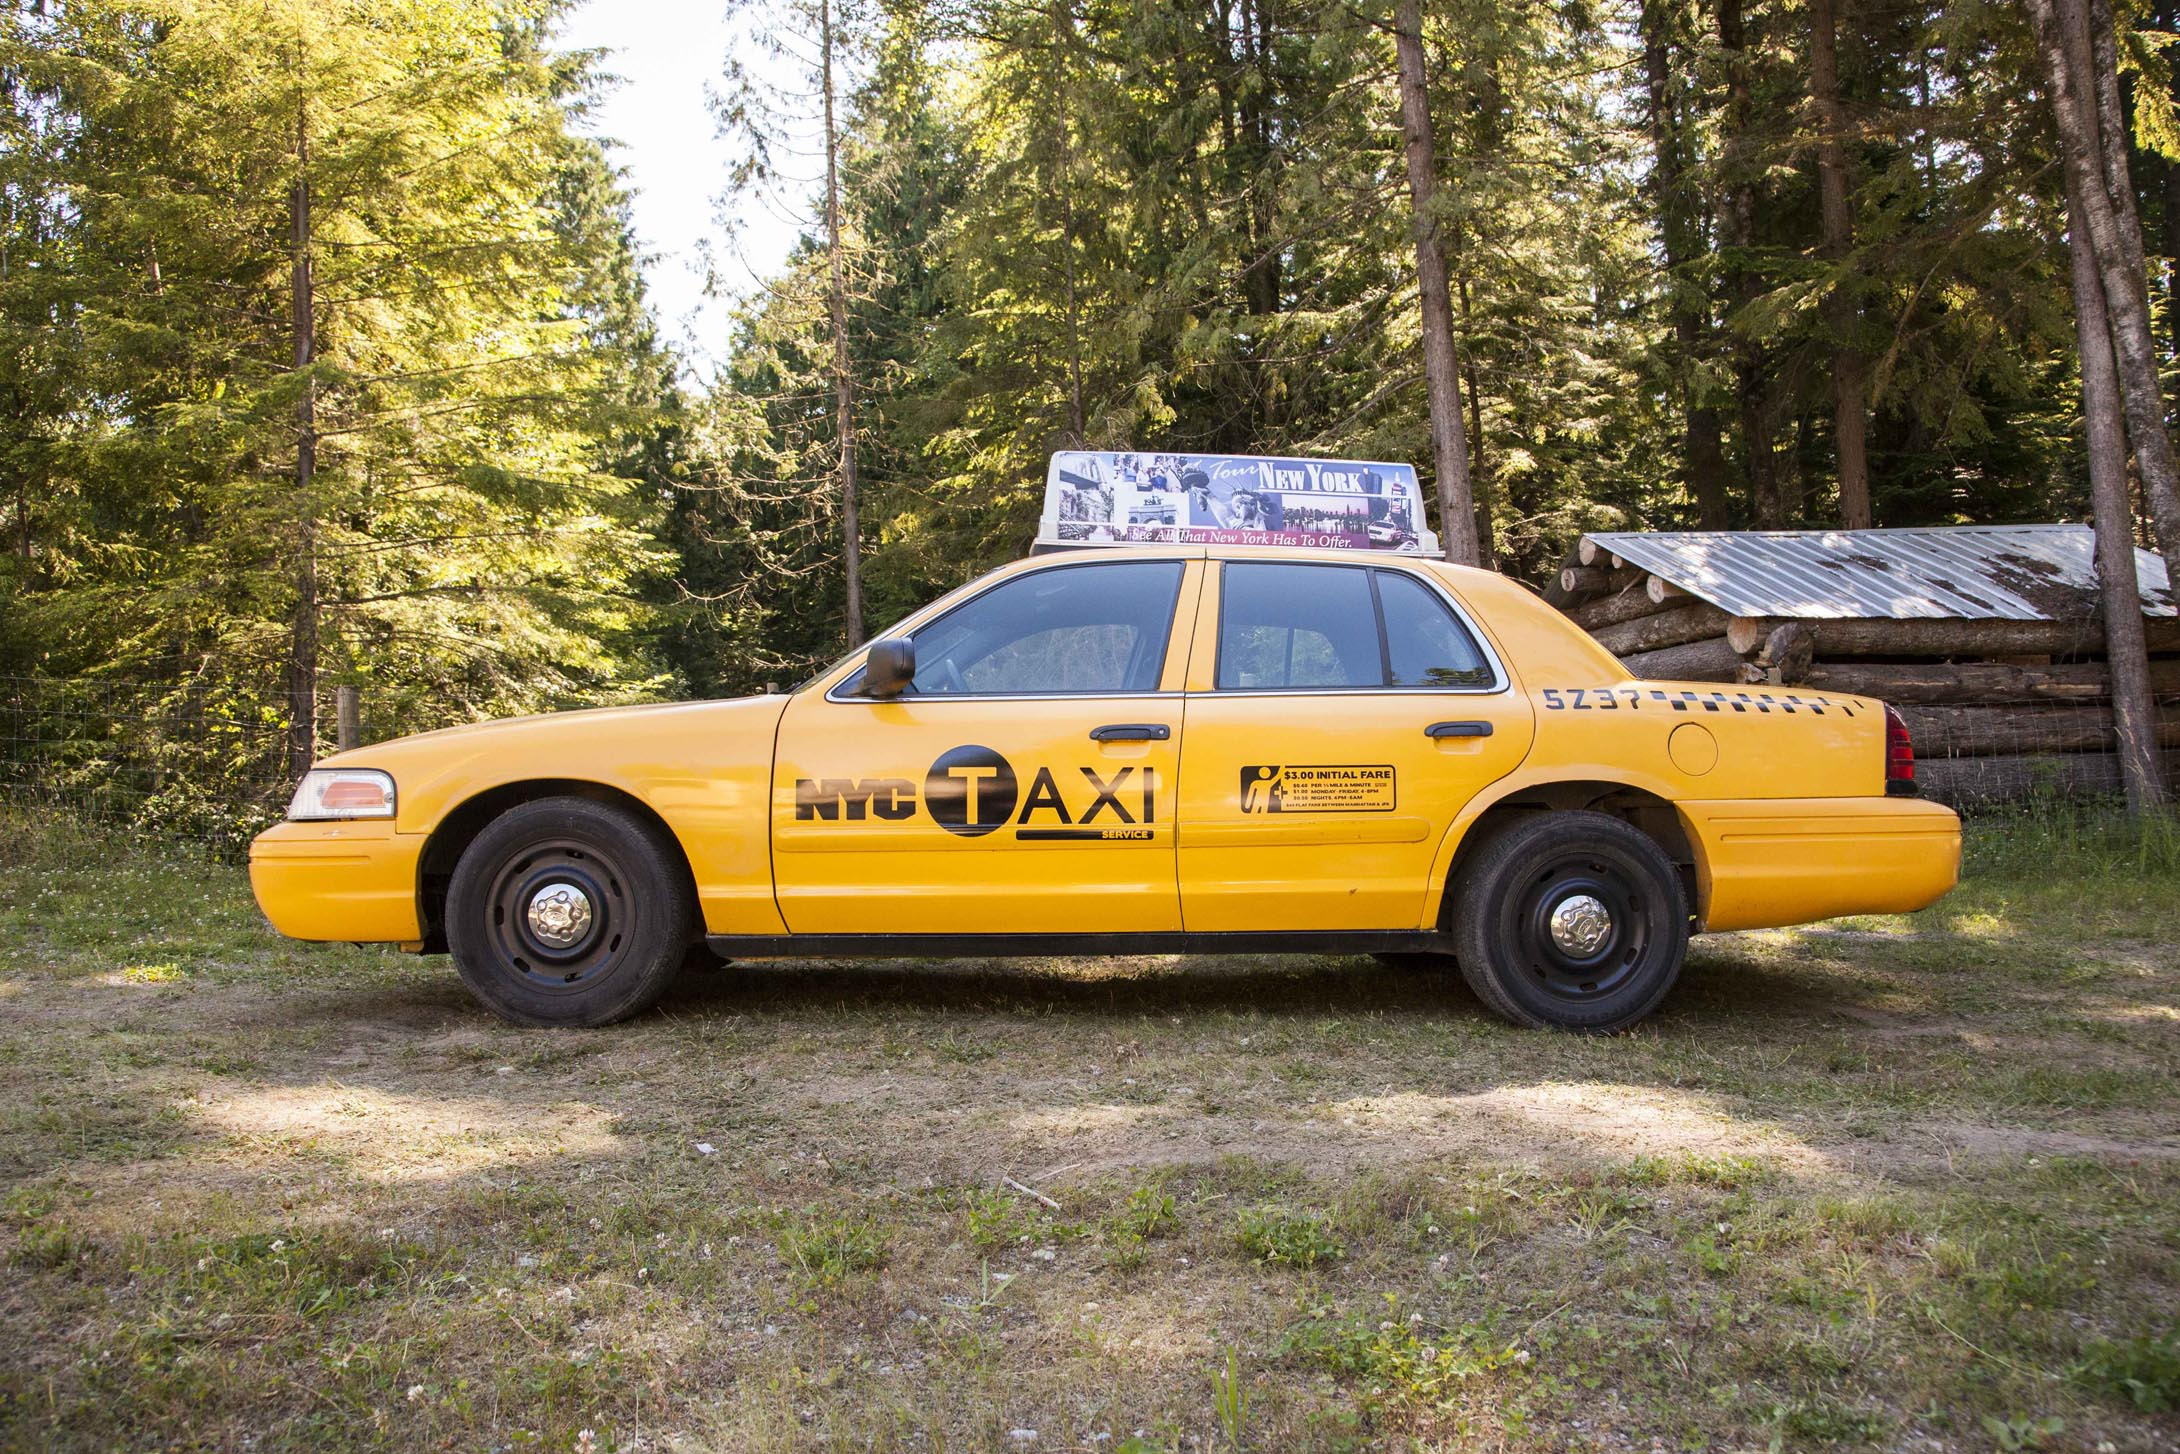 NYC Taxi amp Limousine Commission Driver Education 5001310 ... - photo#31